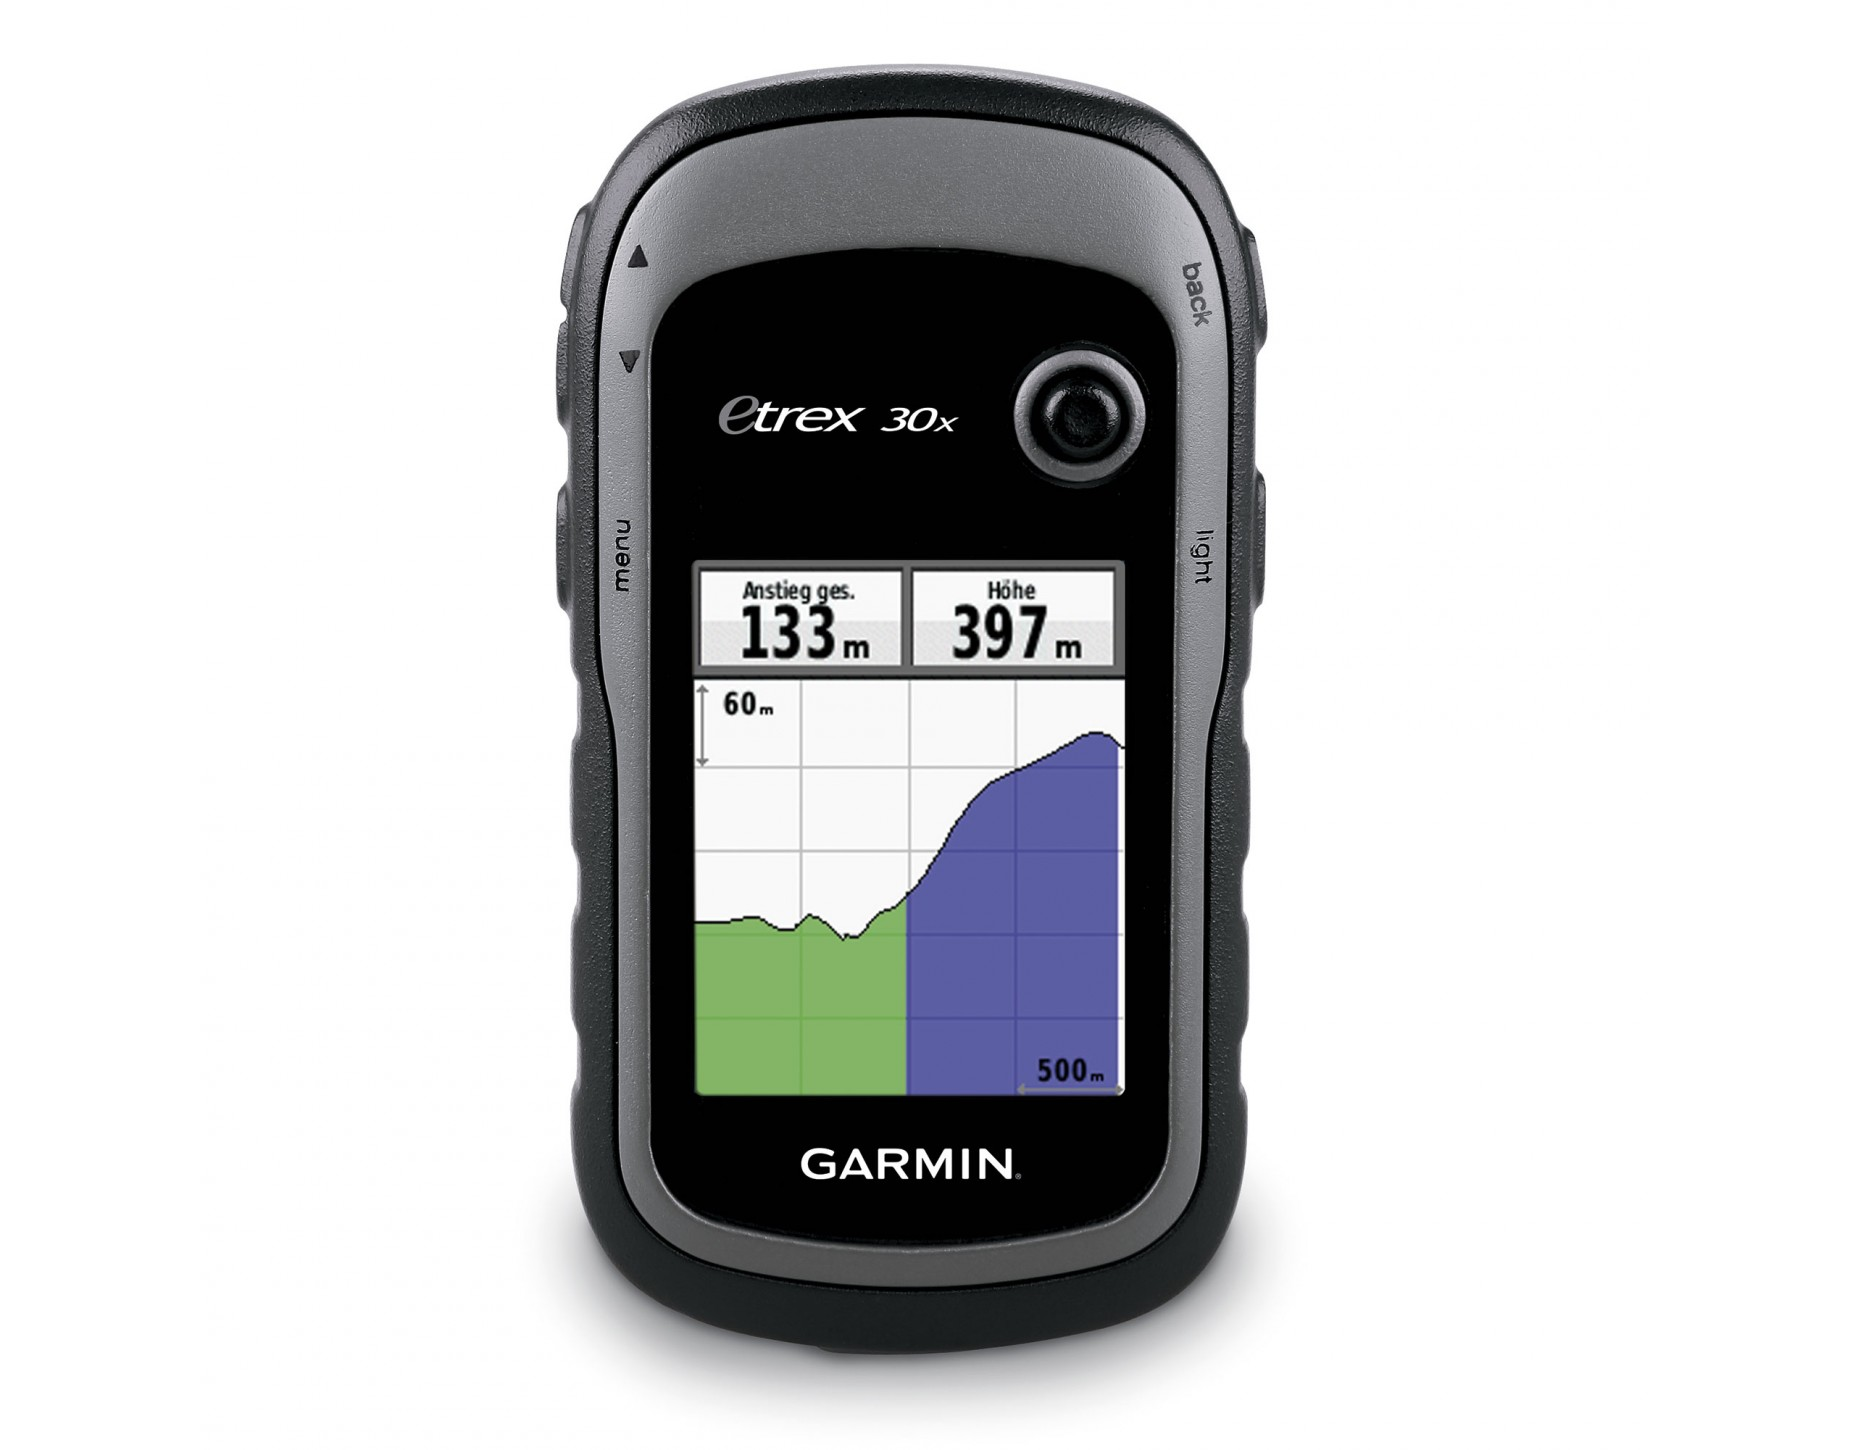 garmin etrex 30x gps navigation device incl topoactive map of western europe everything you. Black Bedroom Furniture Sets. Home Design Ideas